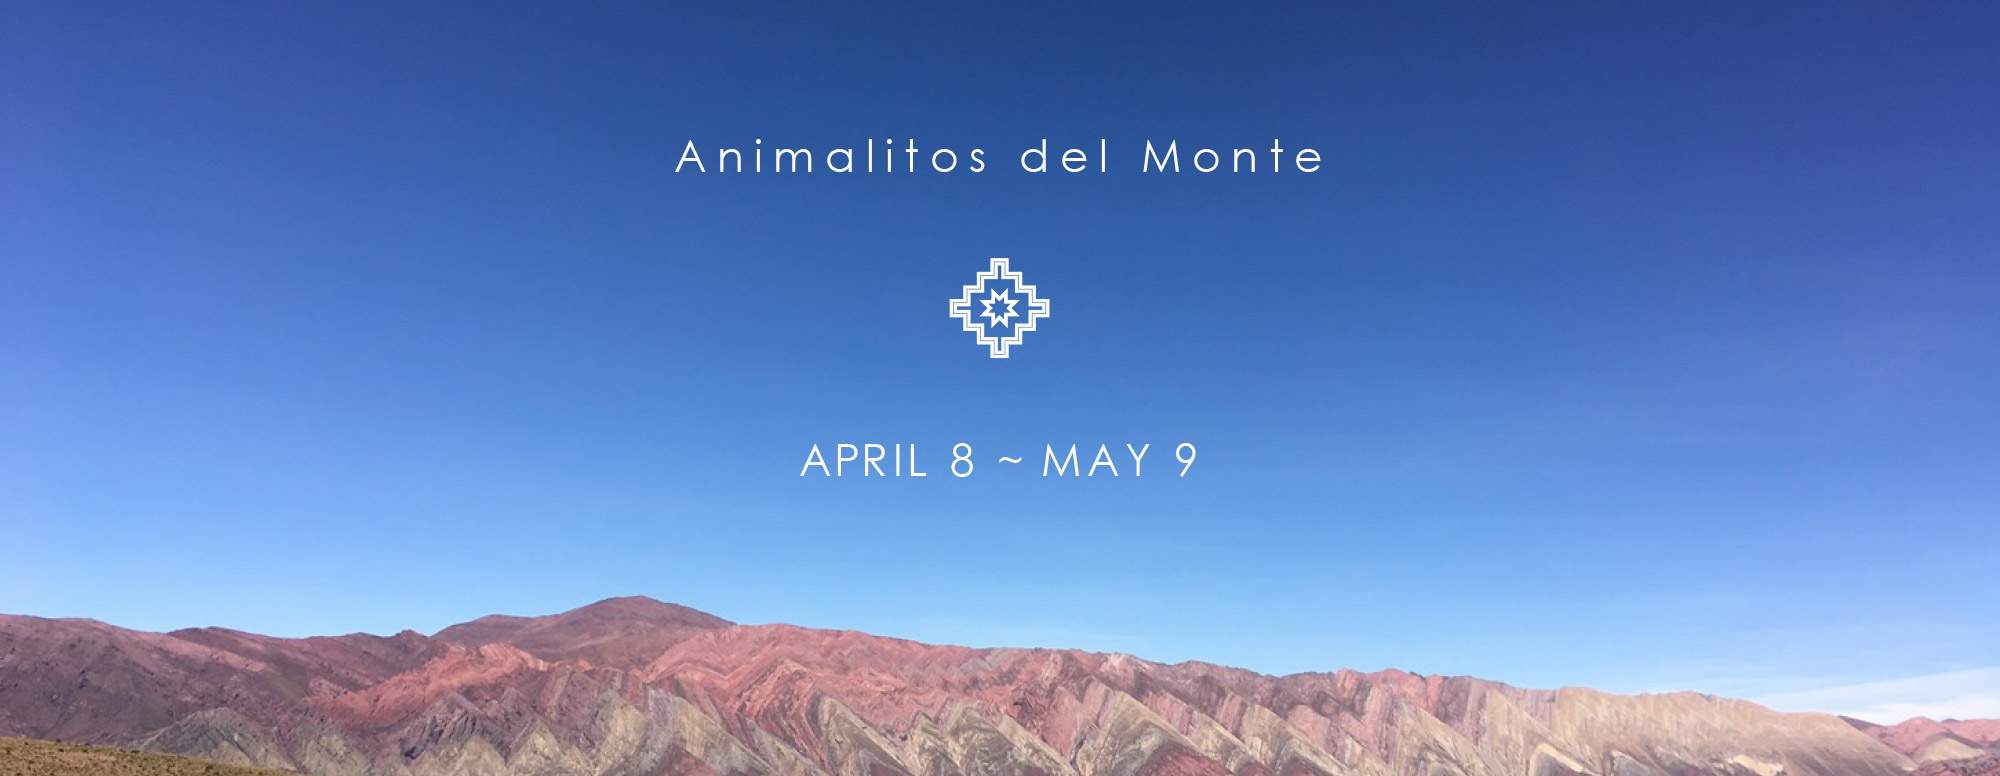 Animalitos del Monte exhibition